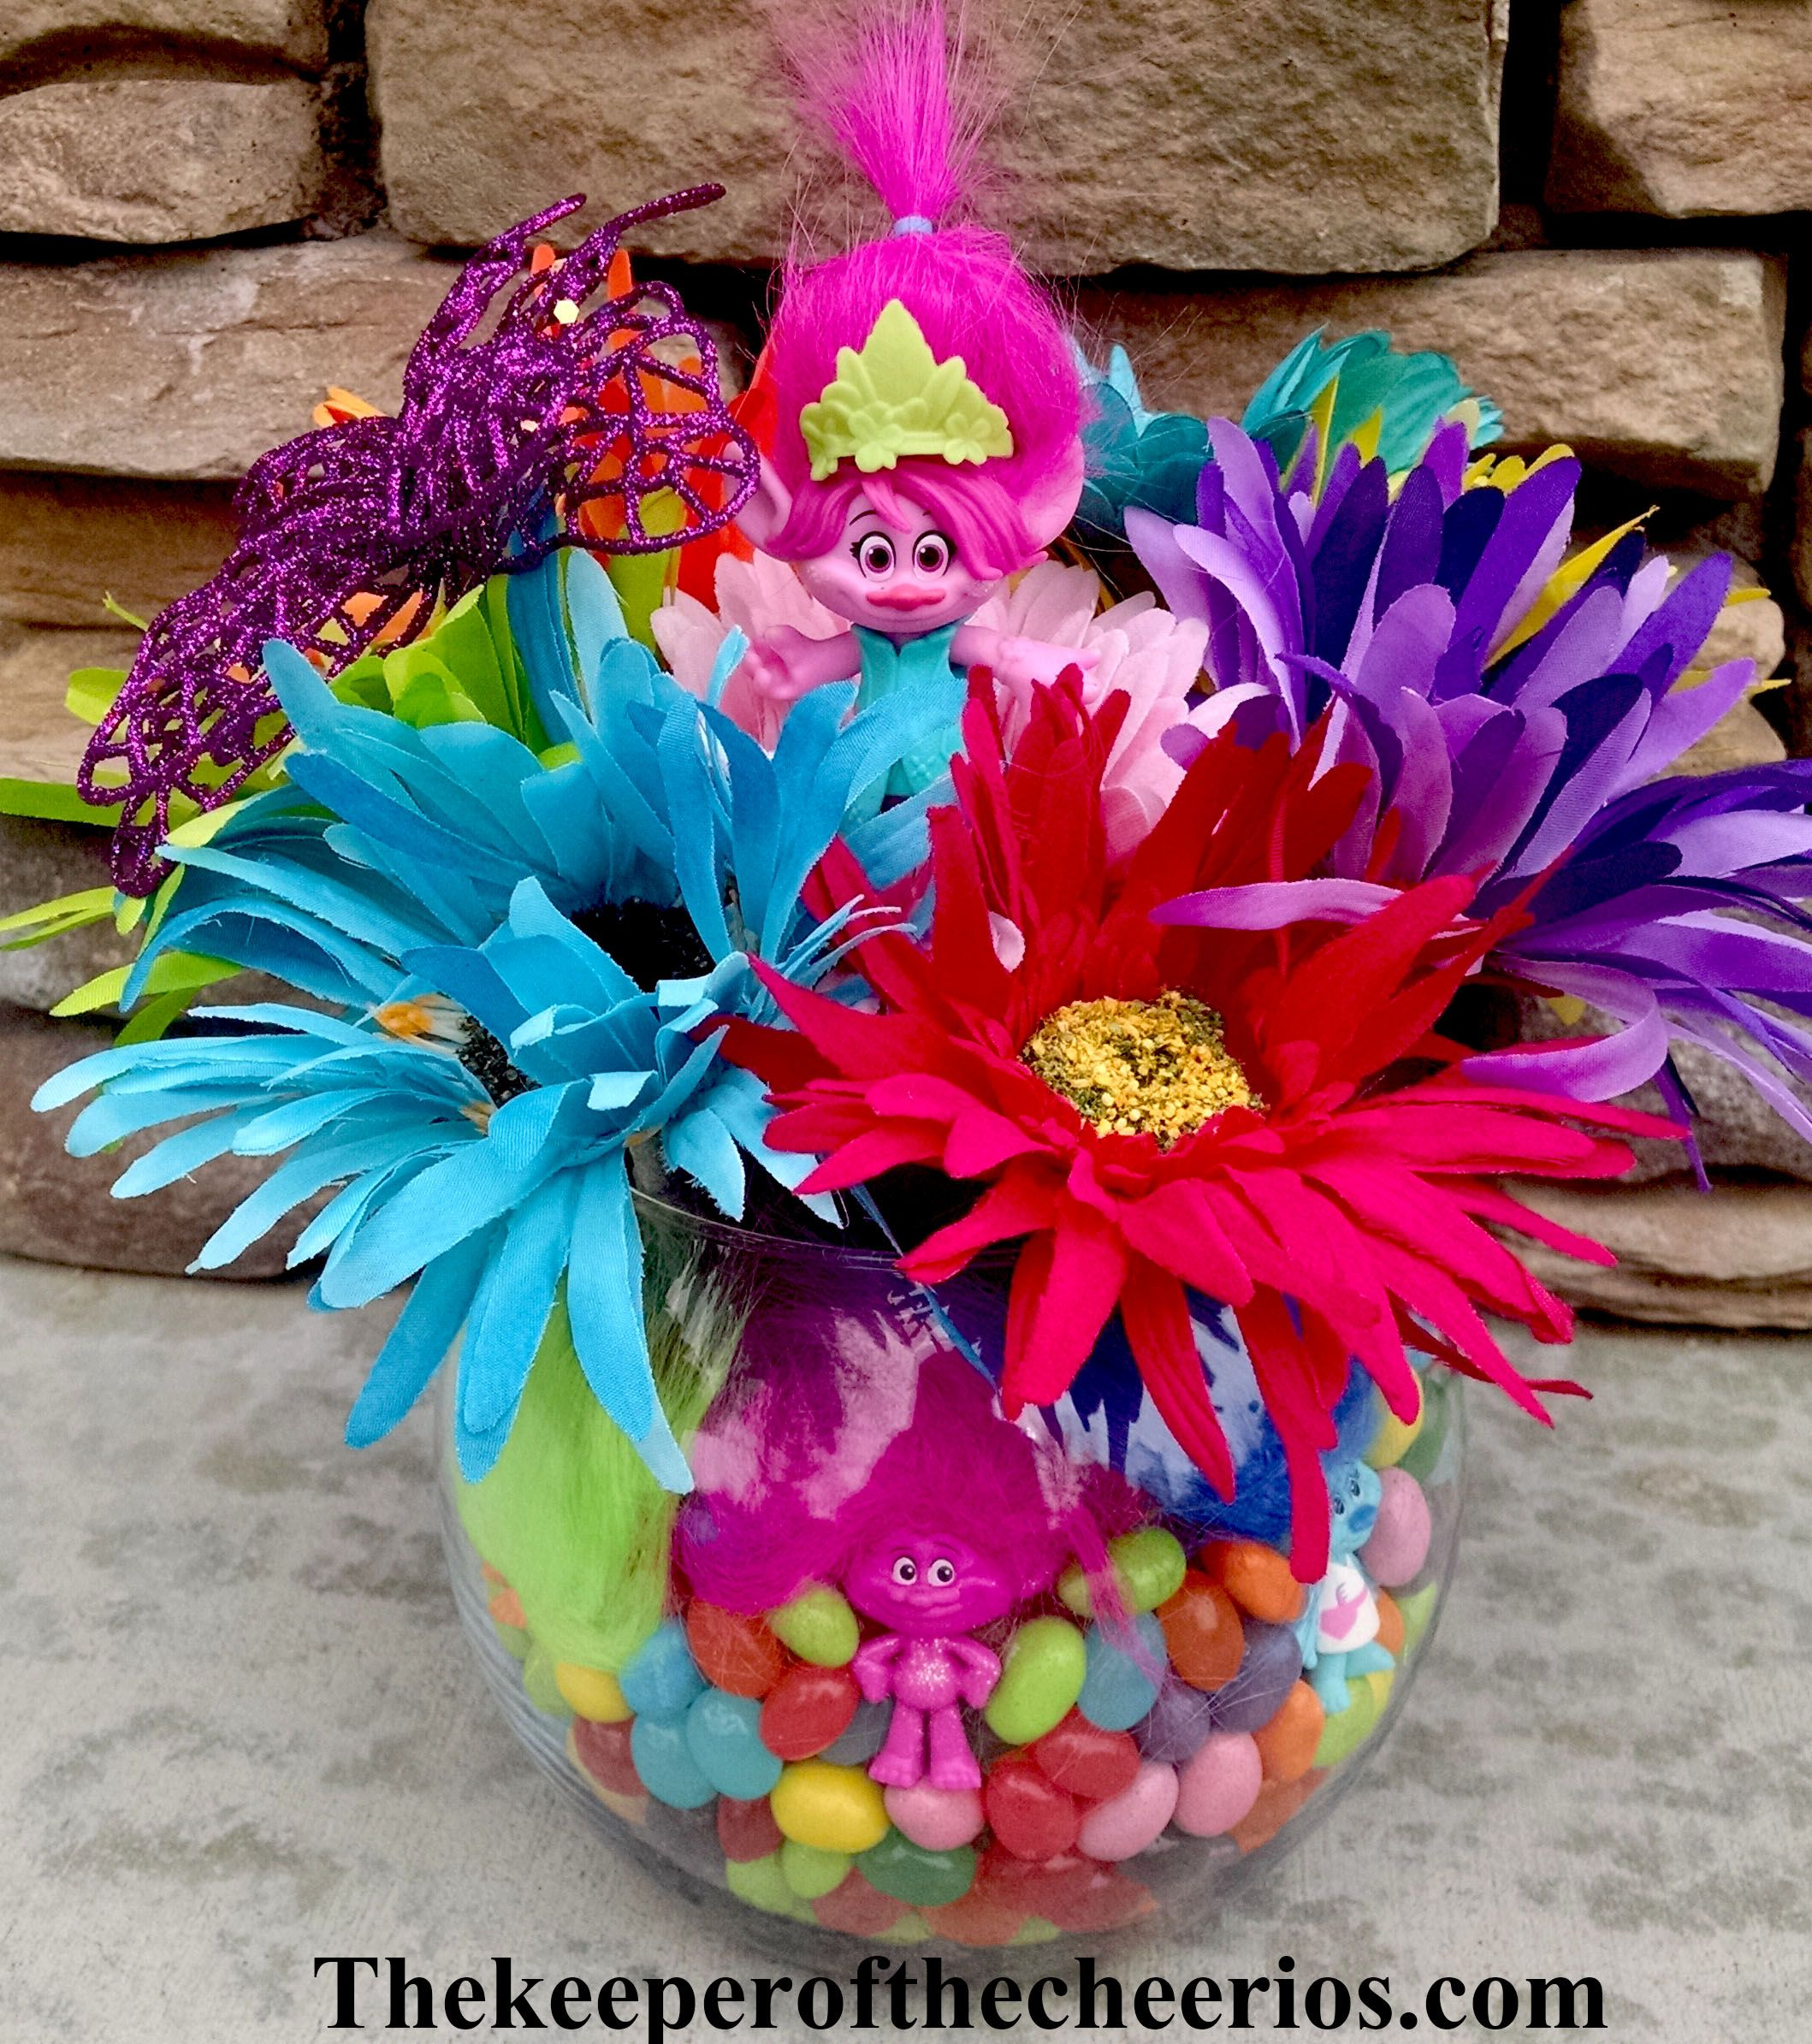 Trolls party centerpiece idea party pinterest troll party trolls birthday party centerpiece ideas these are all lovely i sooo like them dhlflorist Image collections